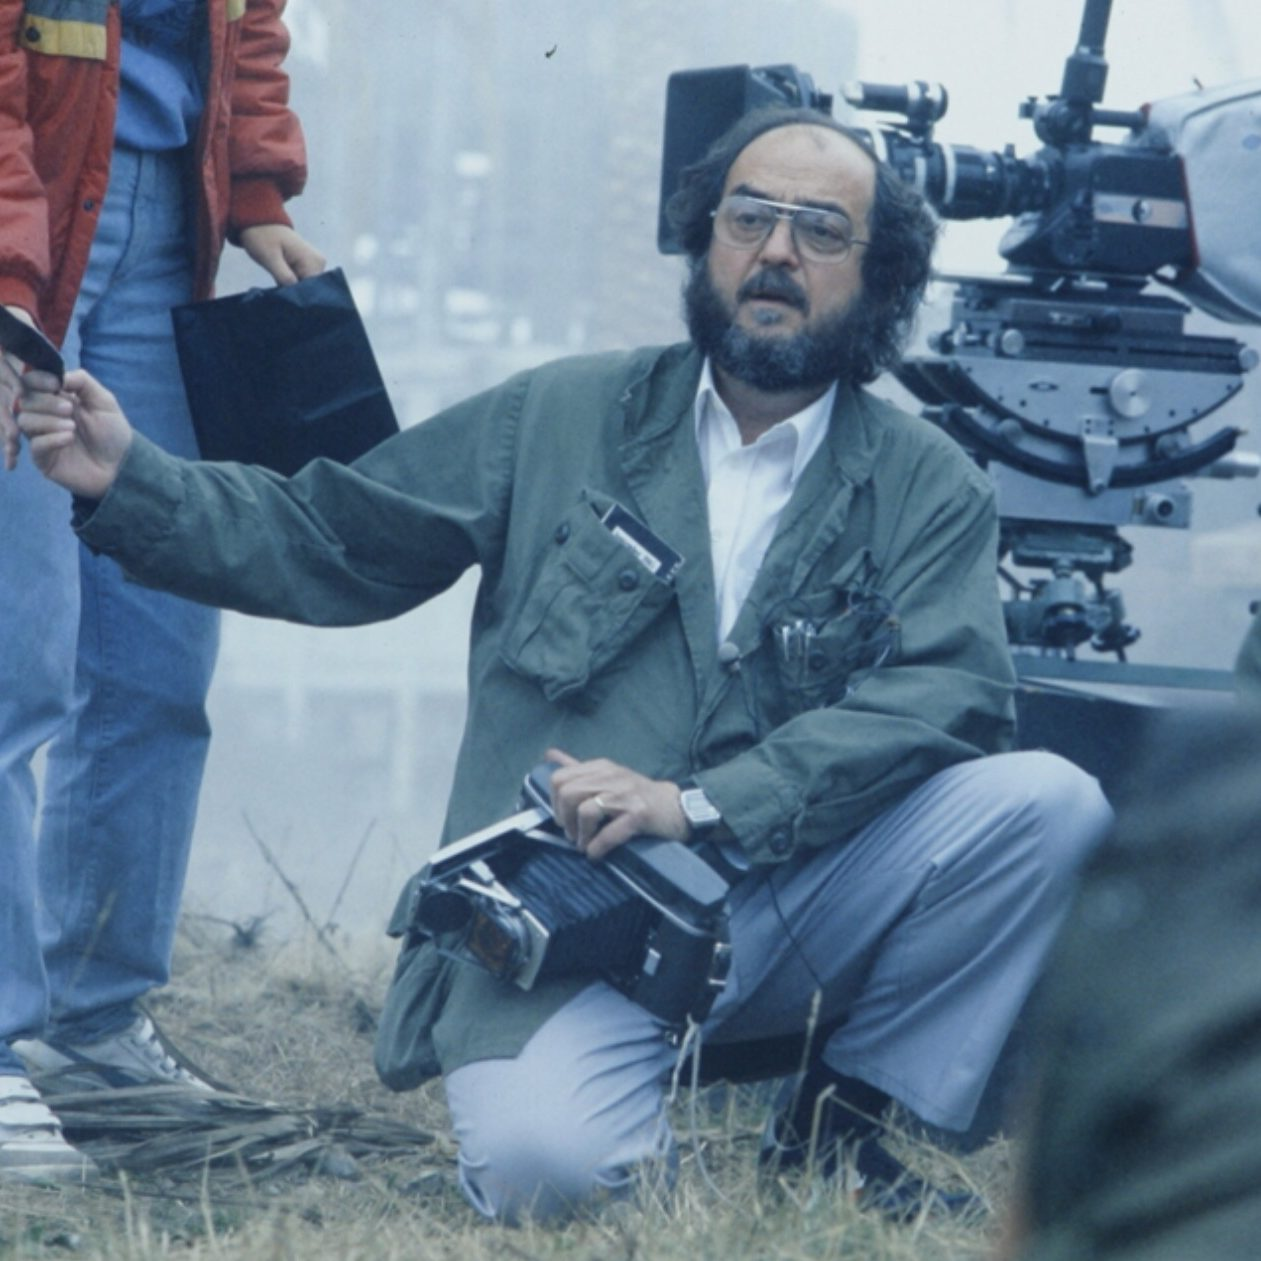 Kubrick on the set of Full Metal Jacket e1573049924222 30 Things You Never Knew About Vietnam Movie Classic Full Metal Jacket